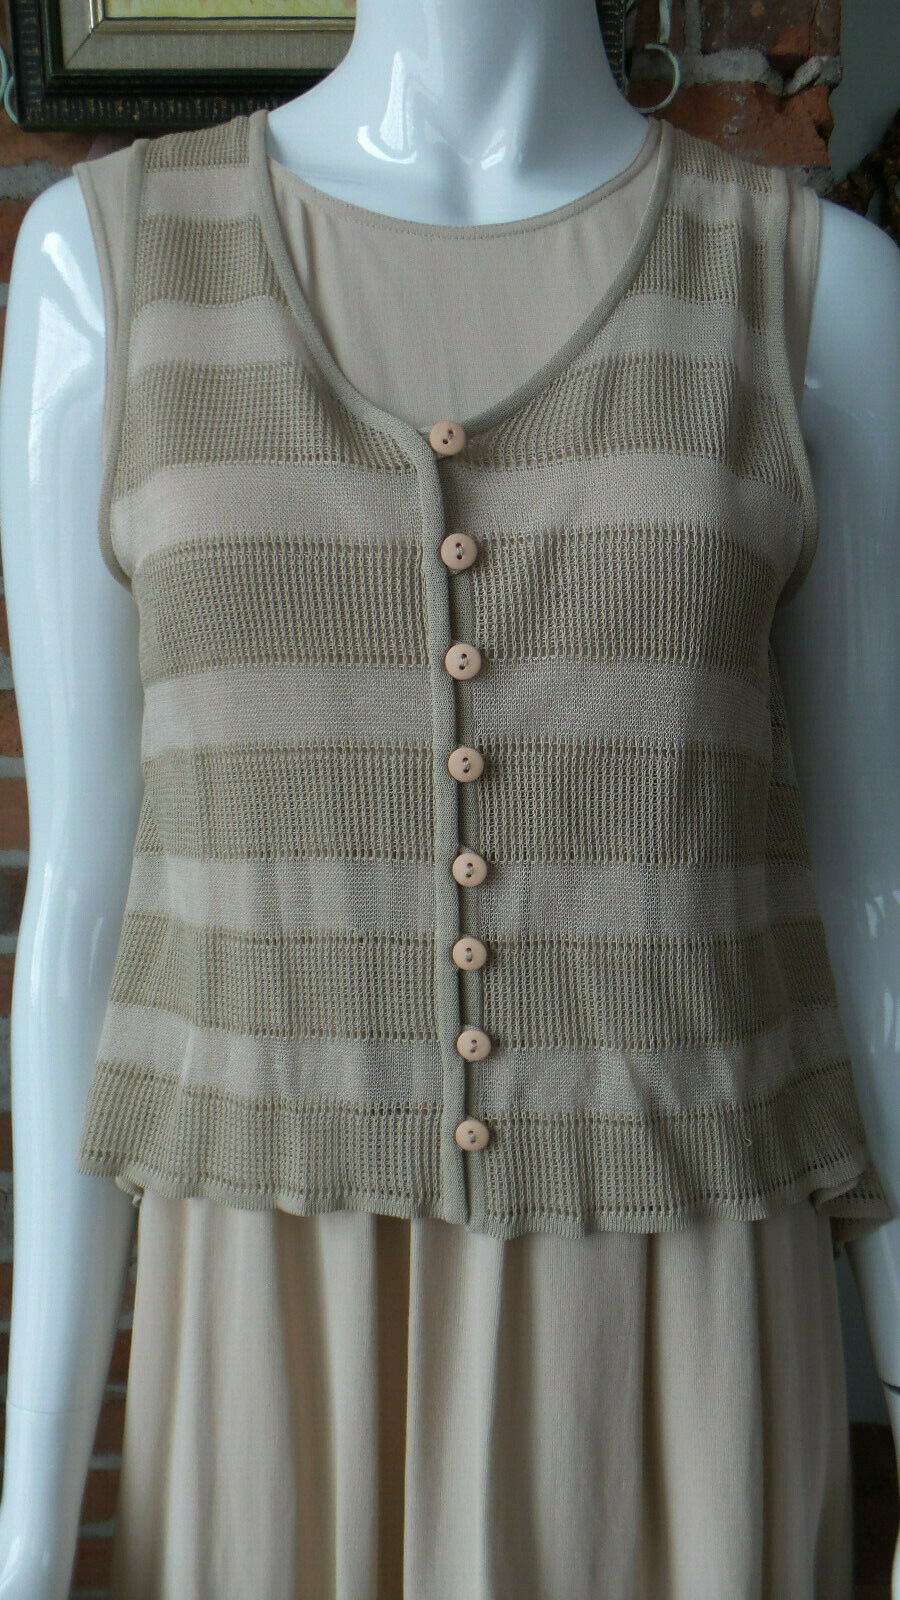 Giorgio Armani Dress with Over Blouse Beige Sleeveless Button Front RARE Size 40